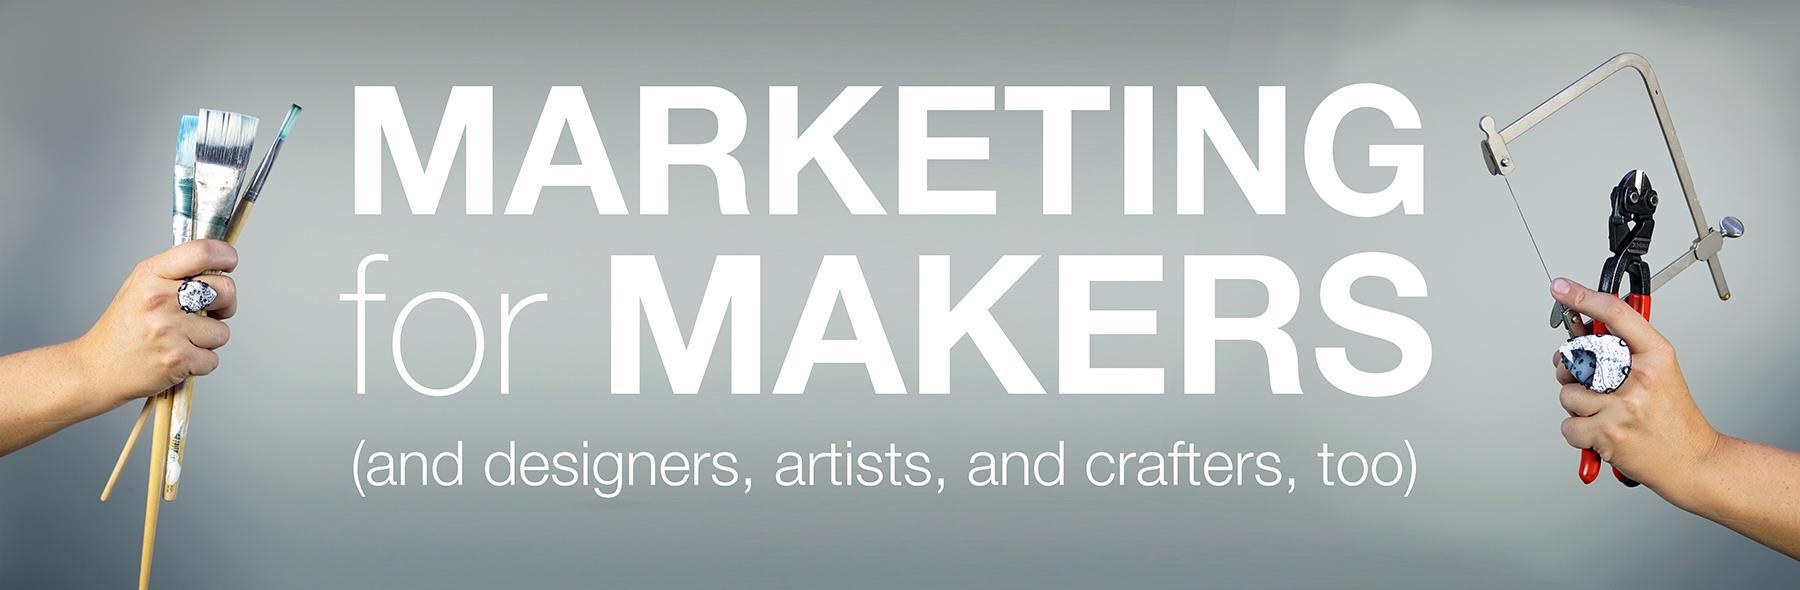 Marketing for Makers course